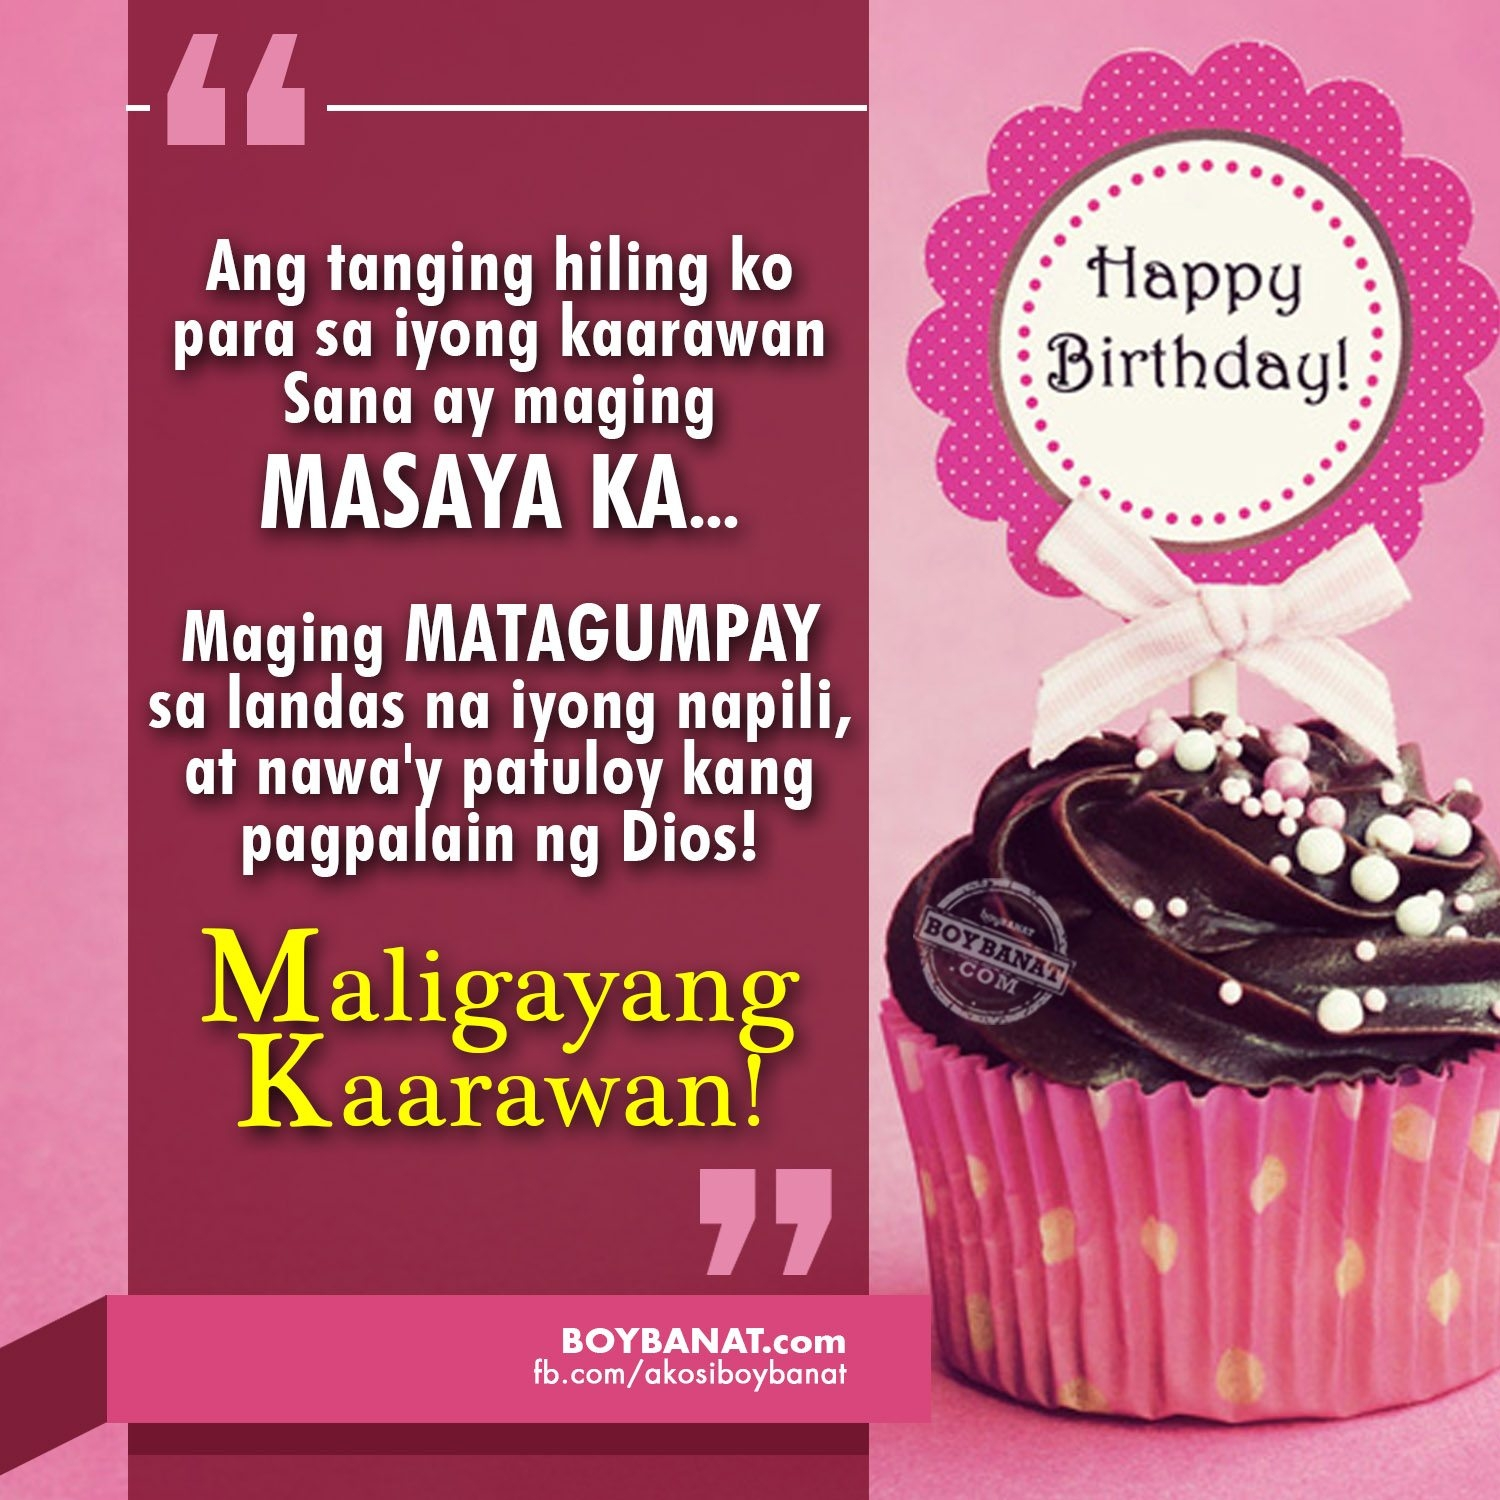 birthday message for wife tagalog ; happy%252018th%2520birthday%2520message%2520for%2520a%2520friend%2520tagalog%2520;%2520happy-birthday-quotes-and-heartfelt-birthday-messages-boy-banat-for-birthday-letter-for-a-friend-tagalog